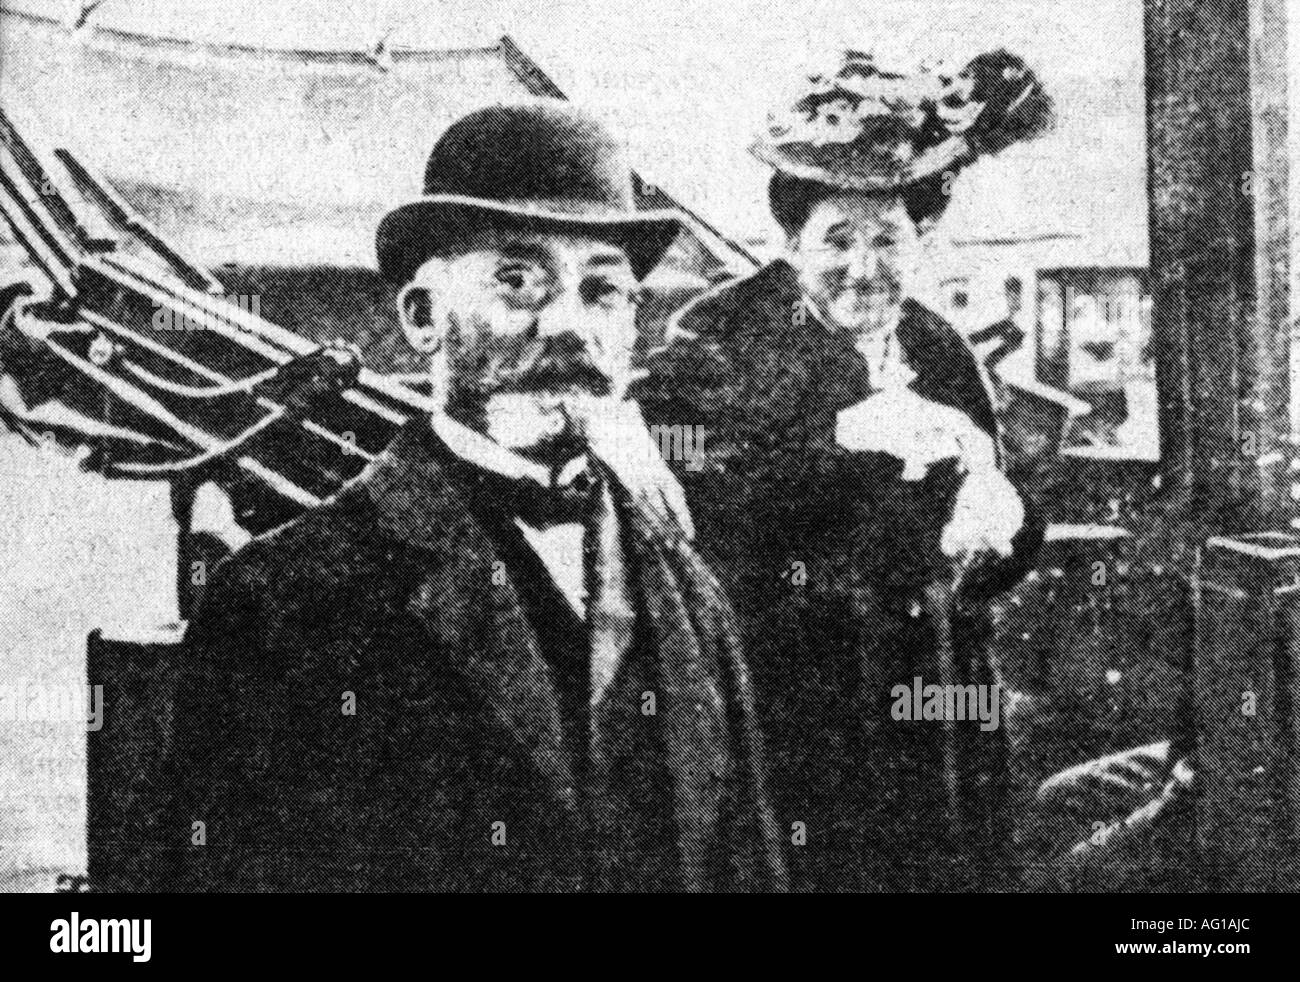 Zahmenhof, Ludwig Lejzer, 15.12.1859 - 14.4.1917, Polish ophthalmologist, initiator of Esperanto, with his wife, circa 1900, Additional-Rights-Clearances-NA - Stock Image